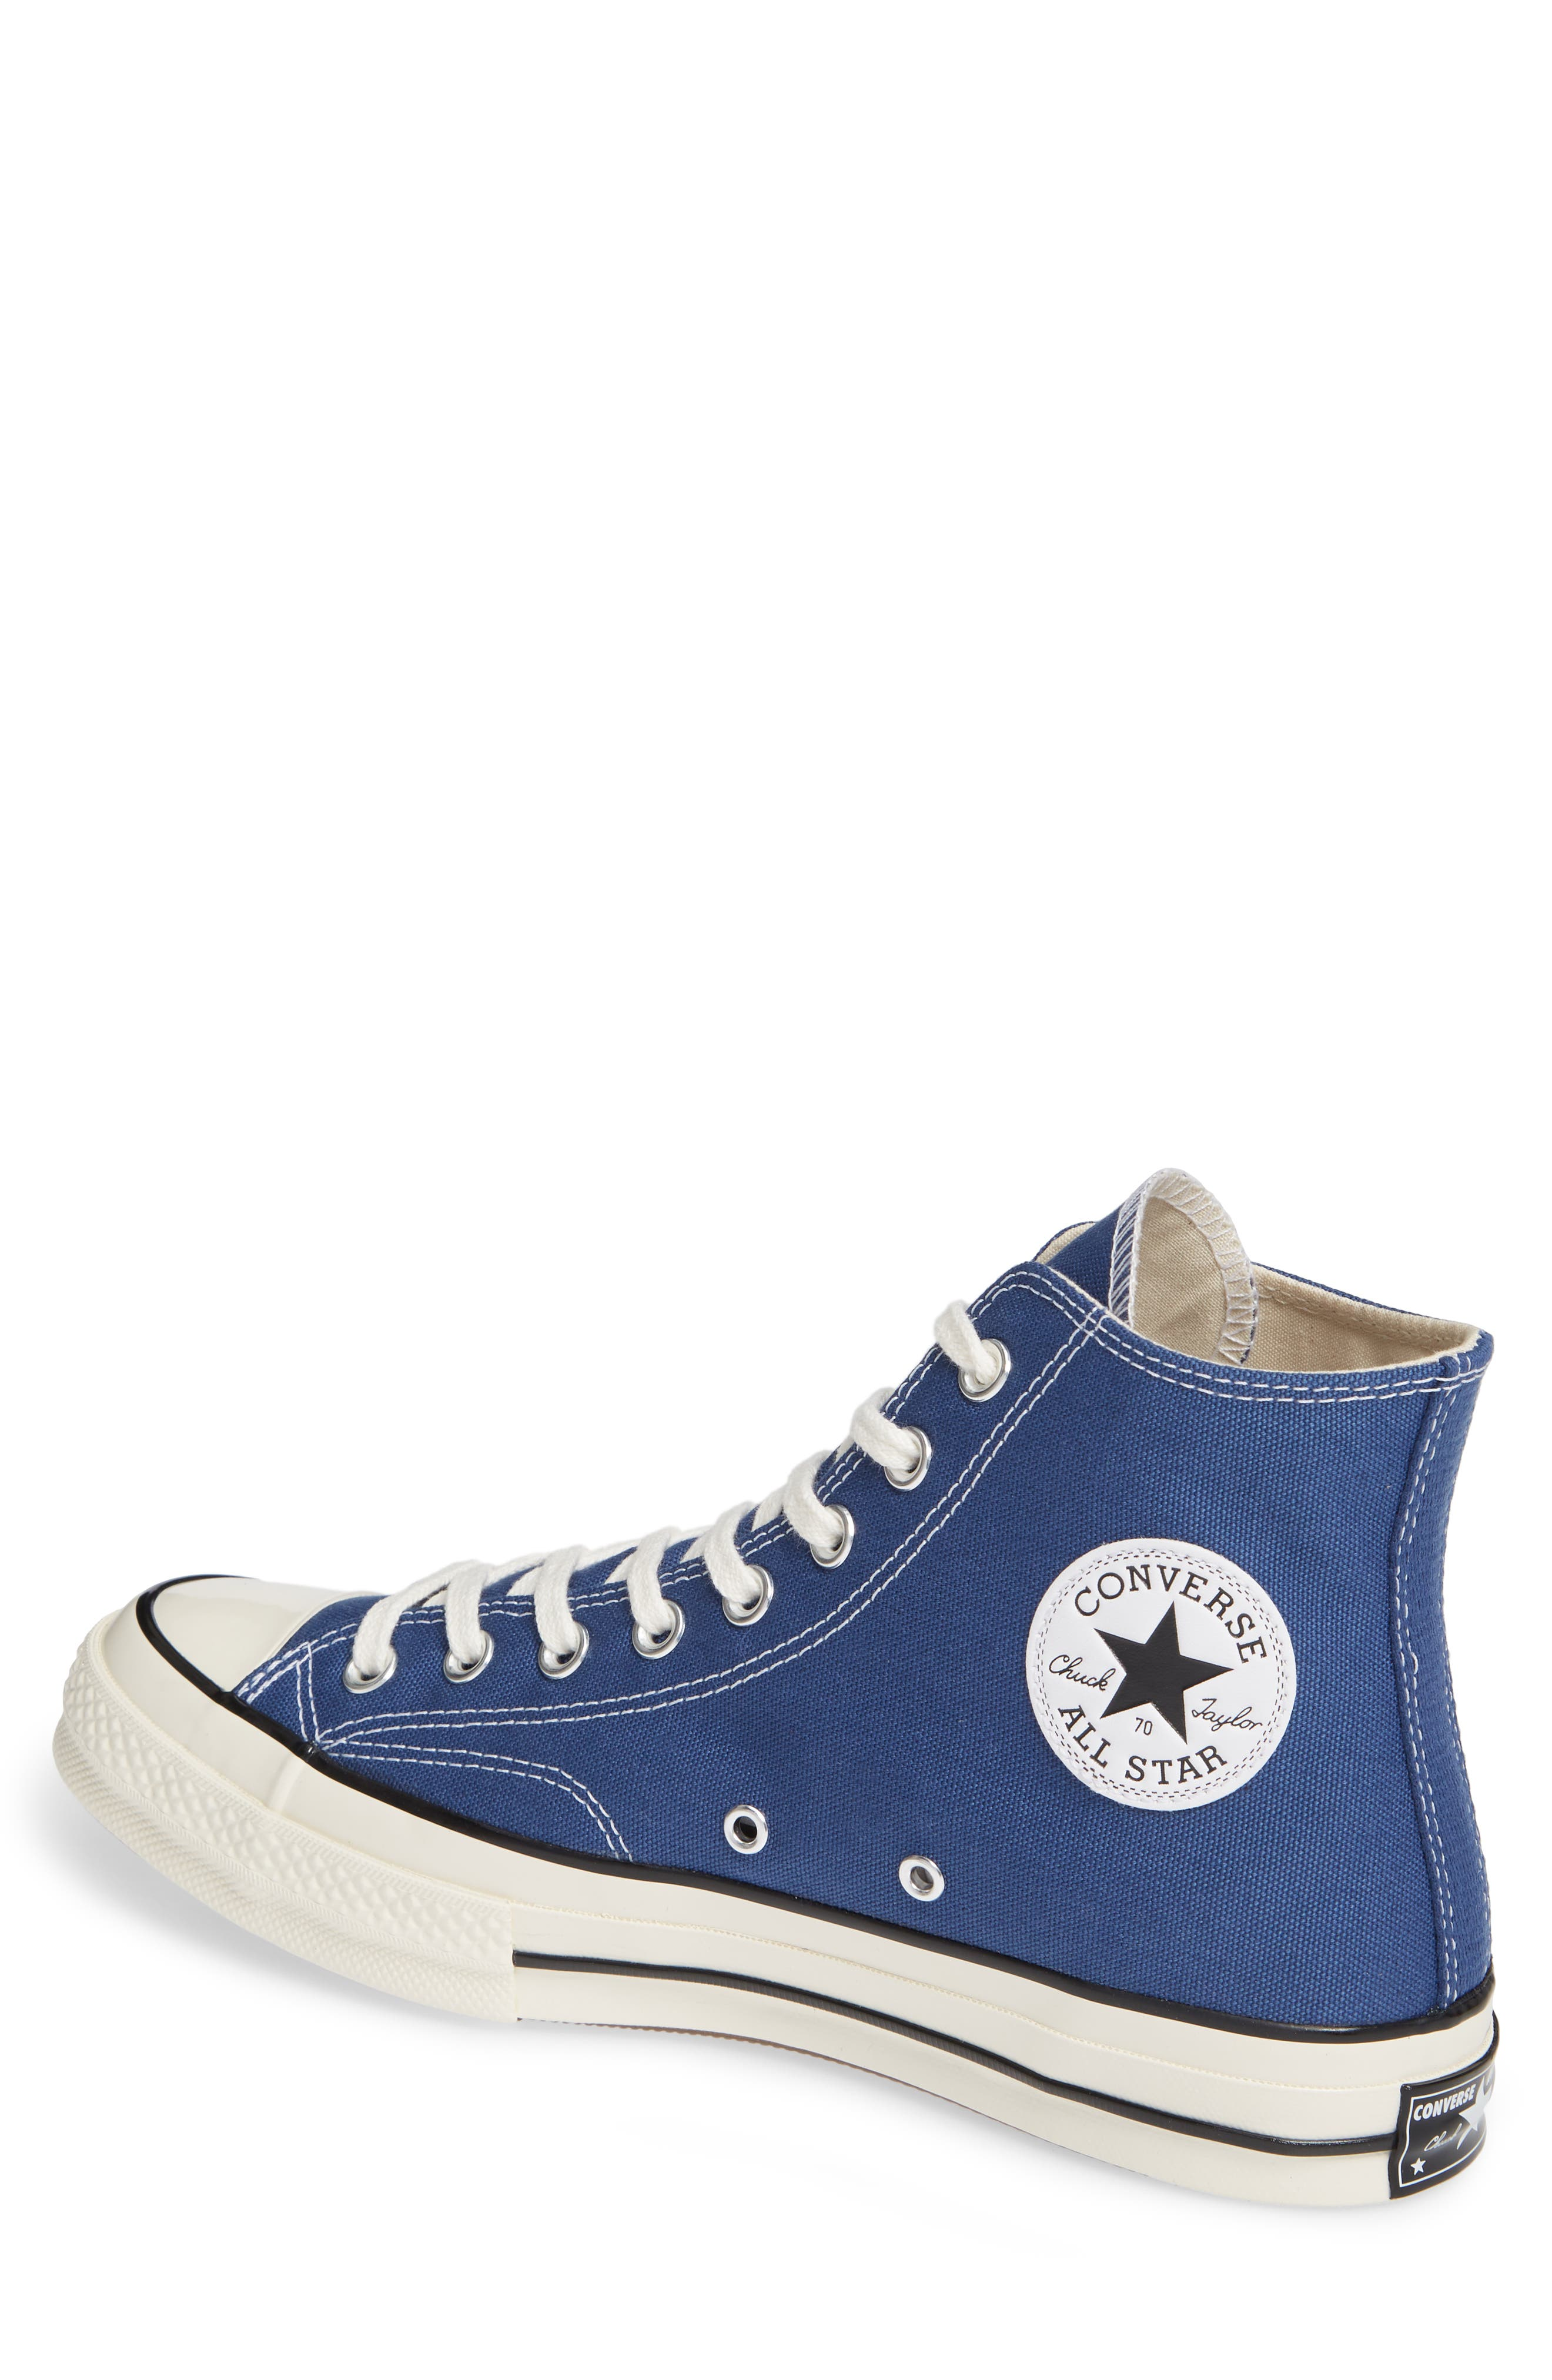 Chuck Taylor<sup>®</sup> All Star<sup>®</sup> 70 Vintage High Top Sneaker,                             Alternate thumbnail 2, color,                             TRUE NAVY/ BLACK